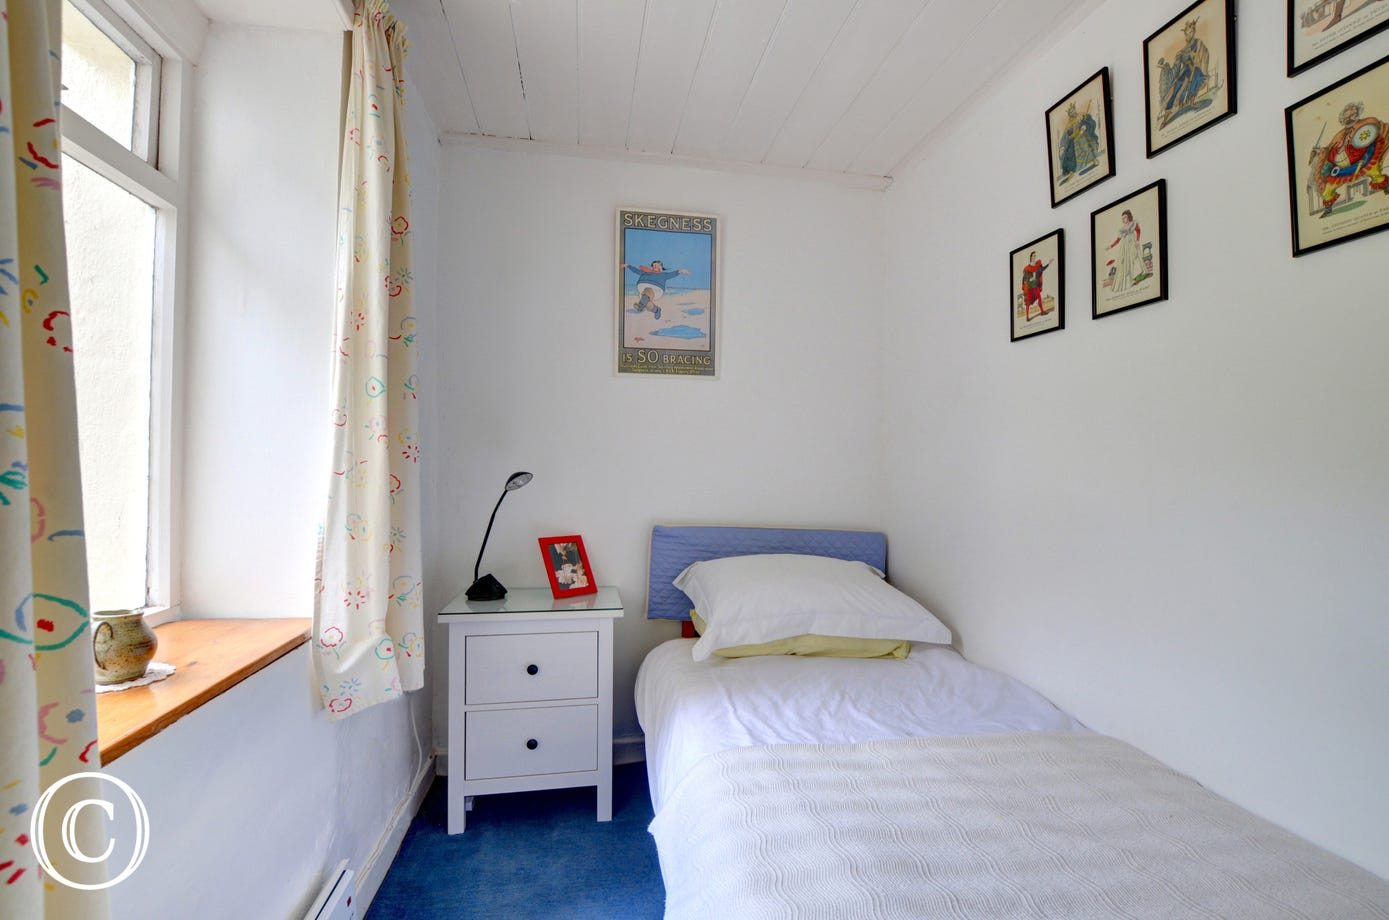 Tidy sized single bedroom with bedside cabinet and a chair